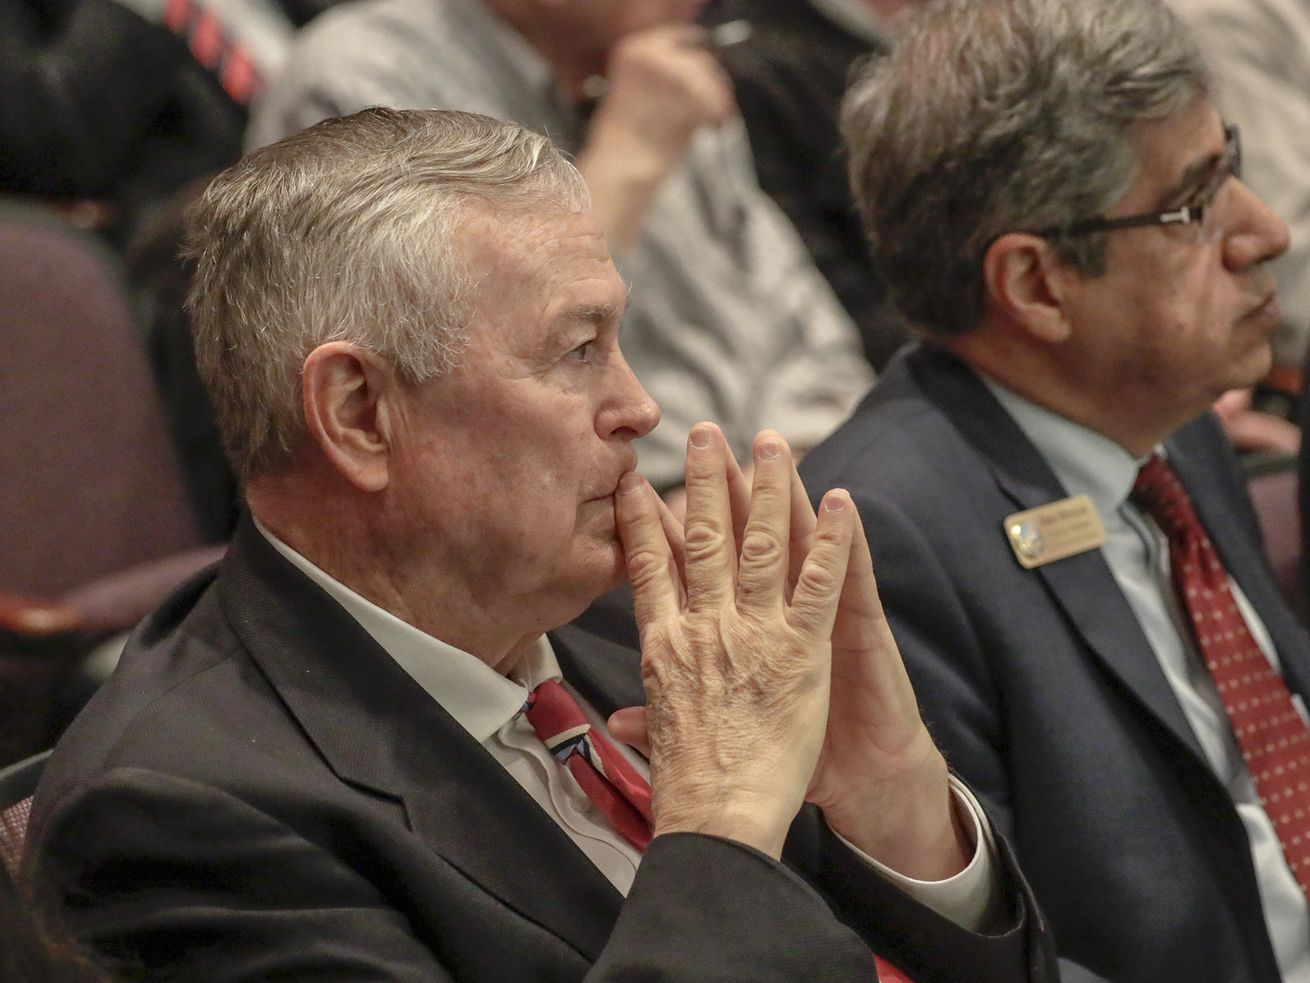 Rep. Dana Rohrabacher at the Orange County Board of Supervisors meeting on March 27, 2018, in Santa Ana, California.